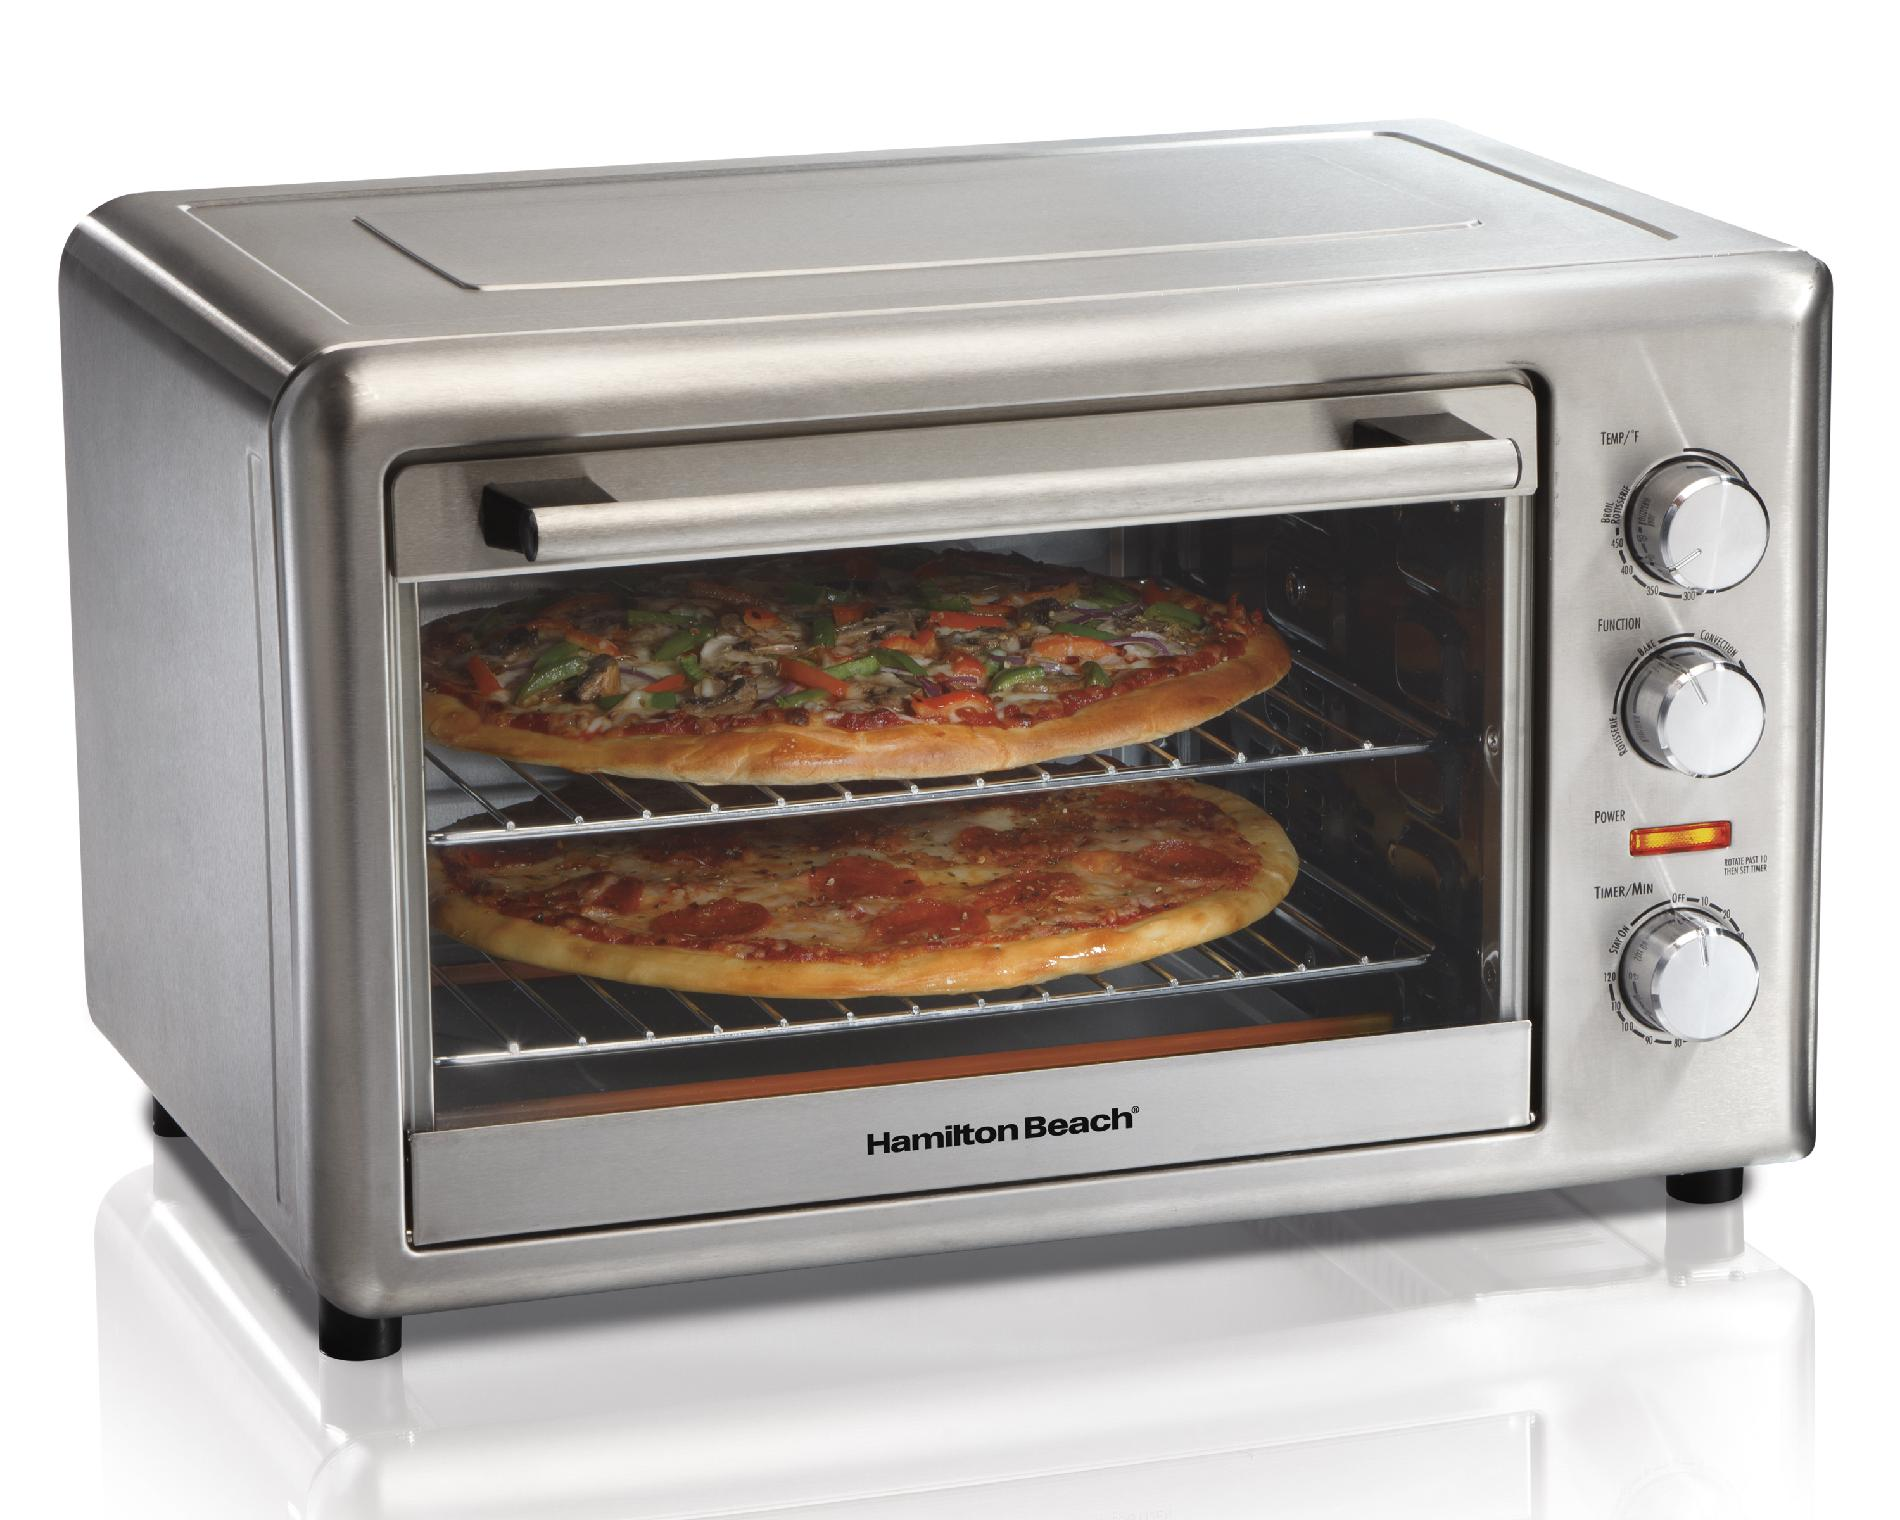 Applica Countertop Oven with Convection & Rotisserie at Sears.com